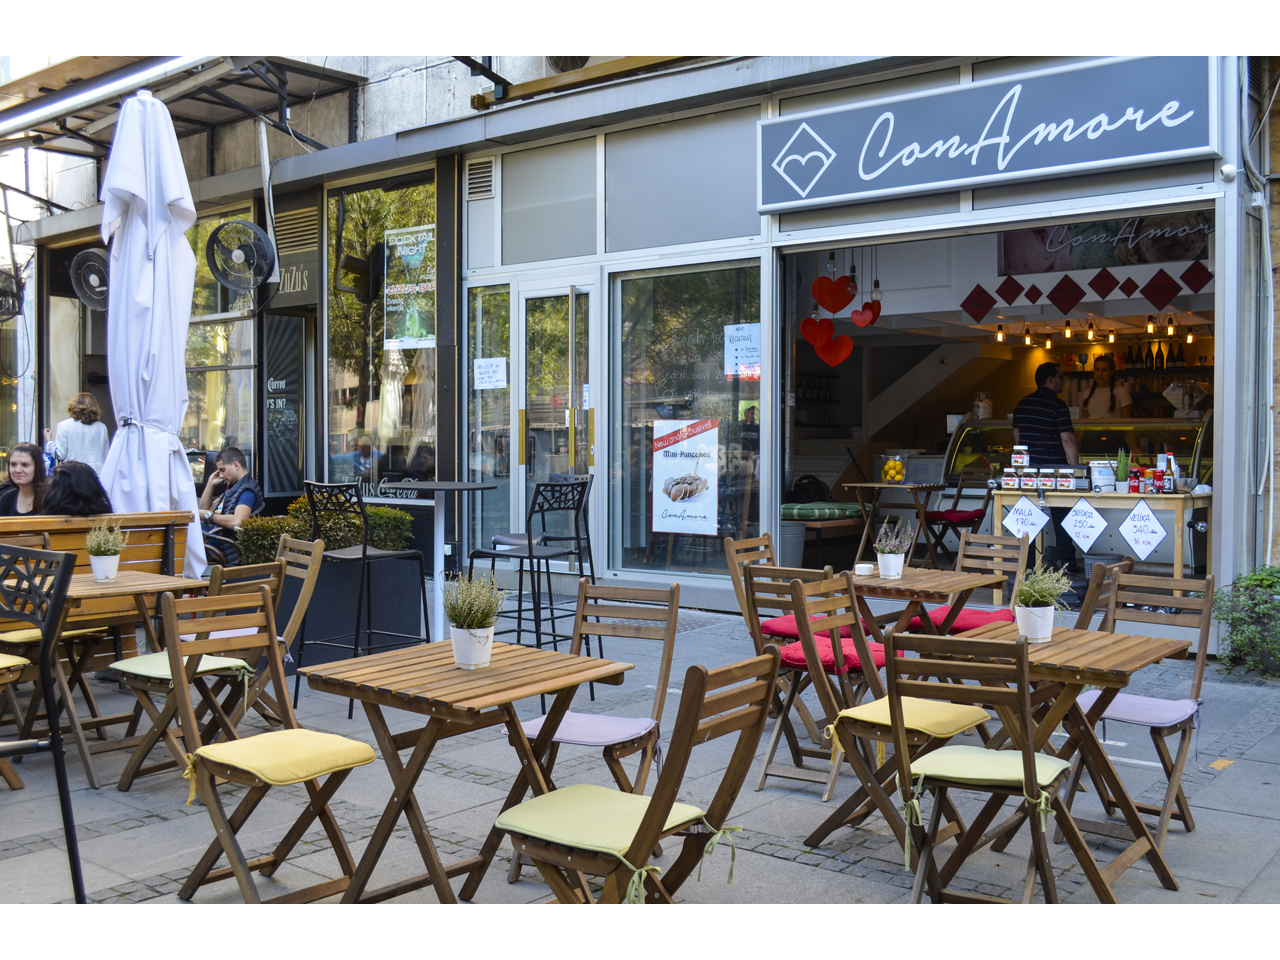 CONAMORE Pastry shops Beograd